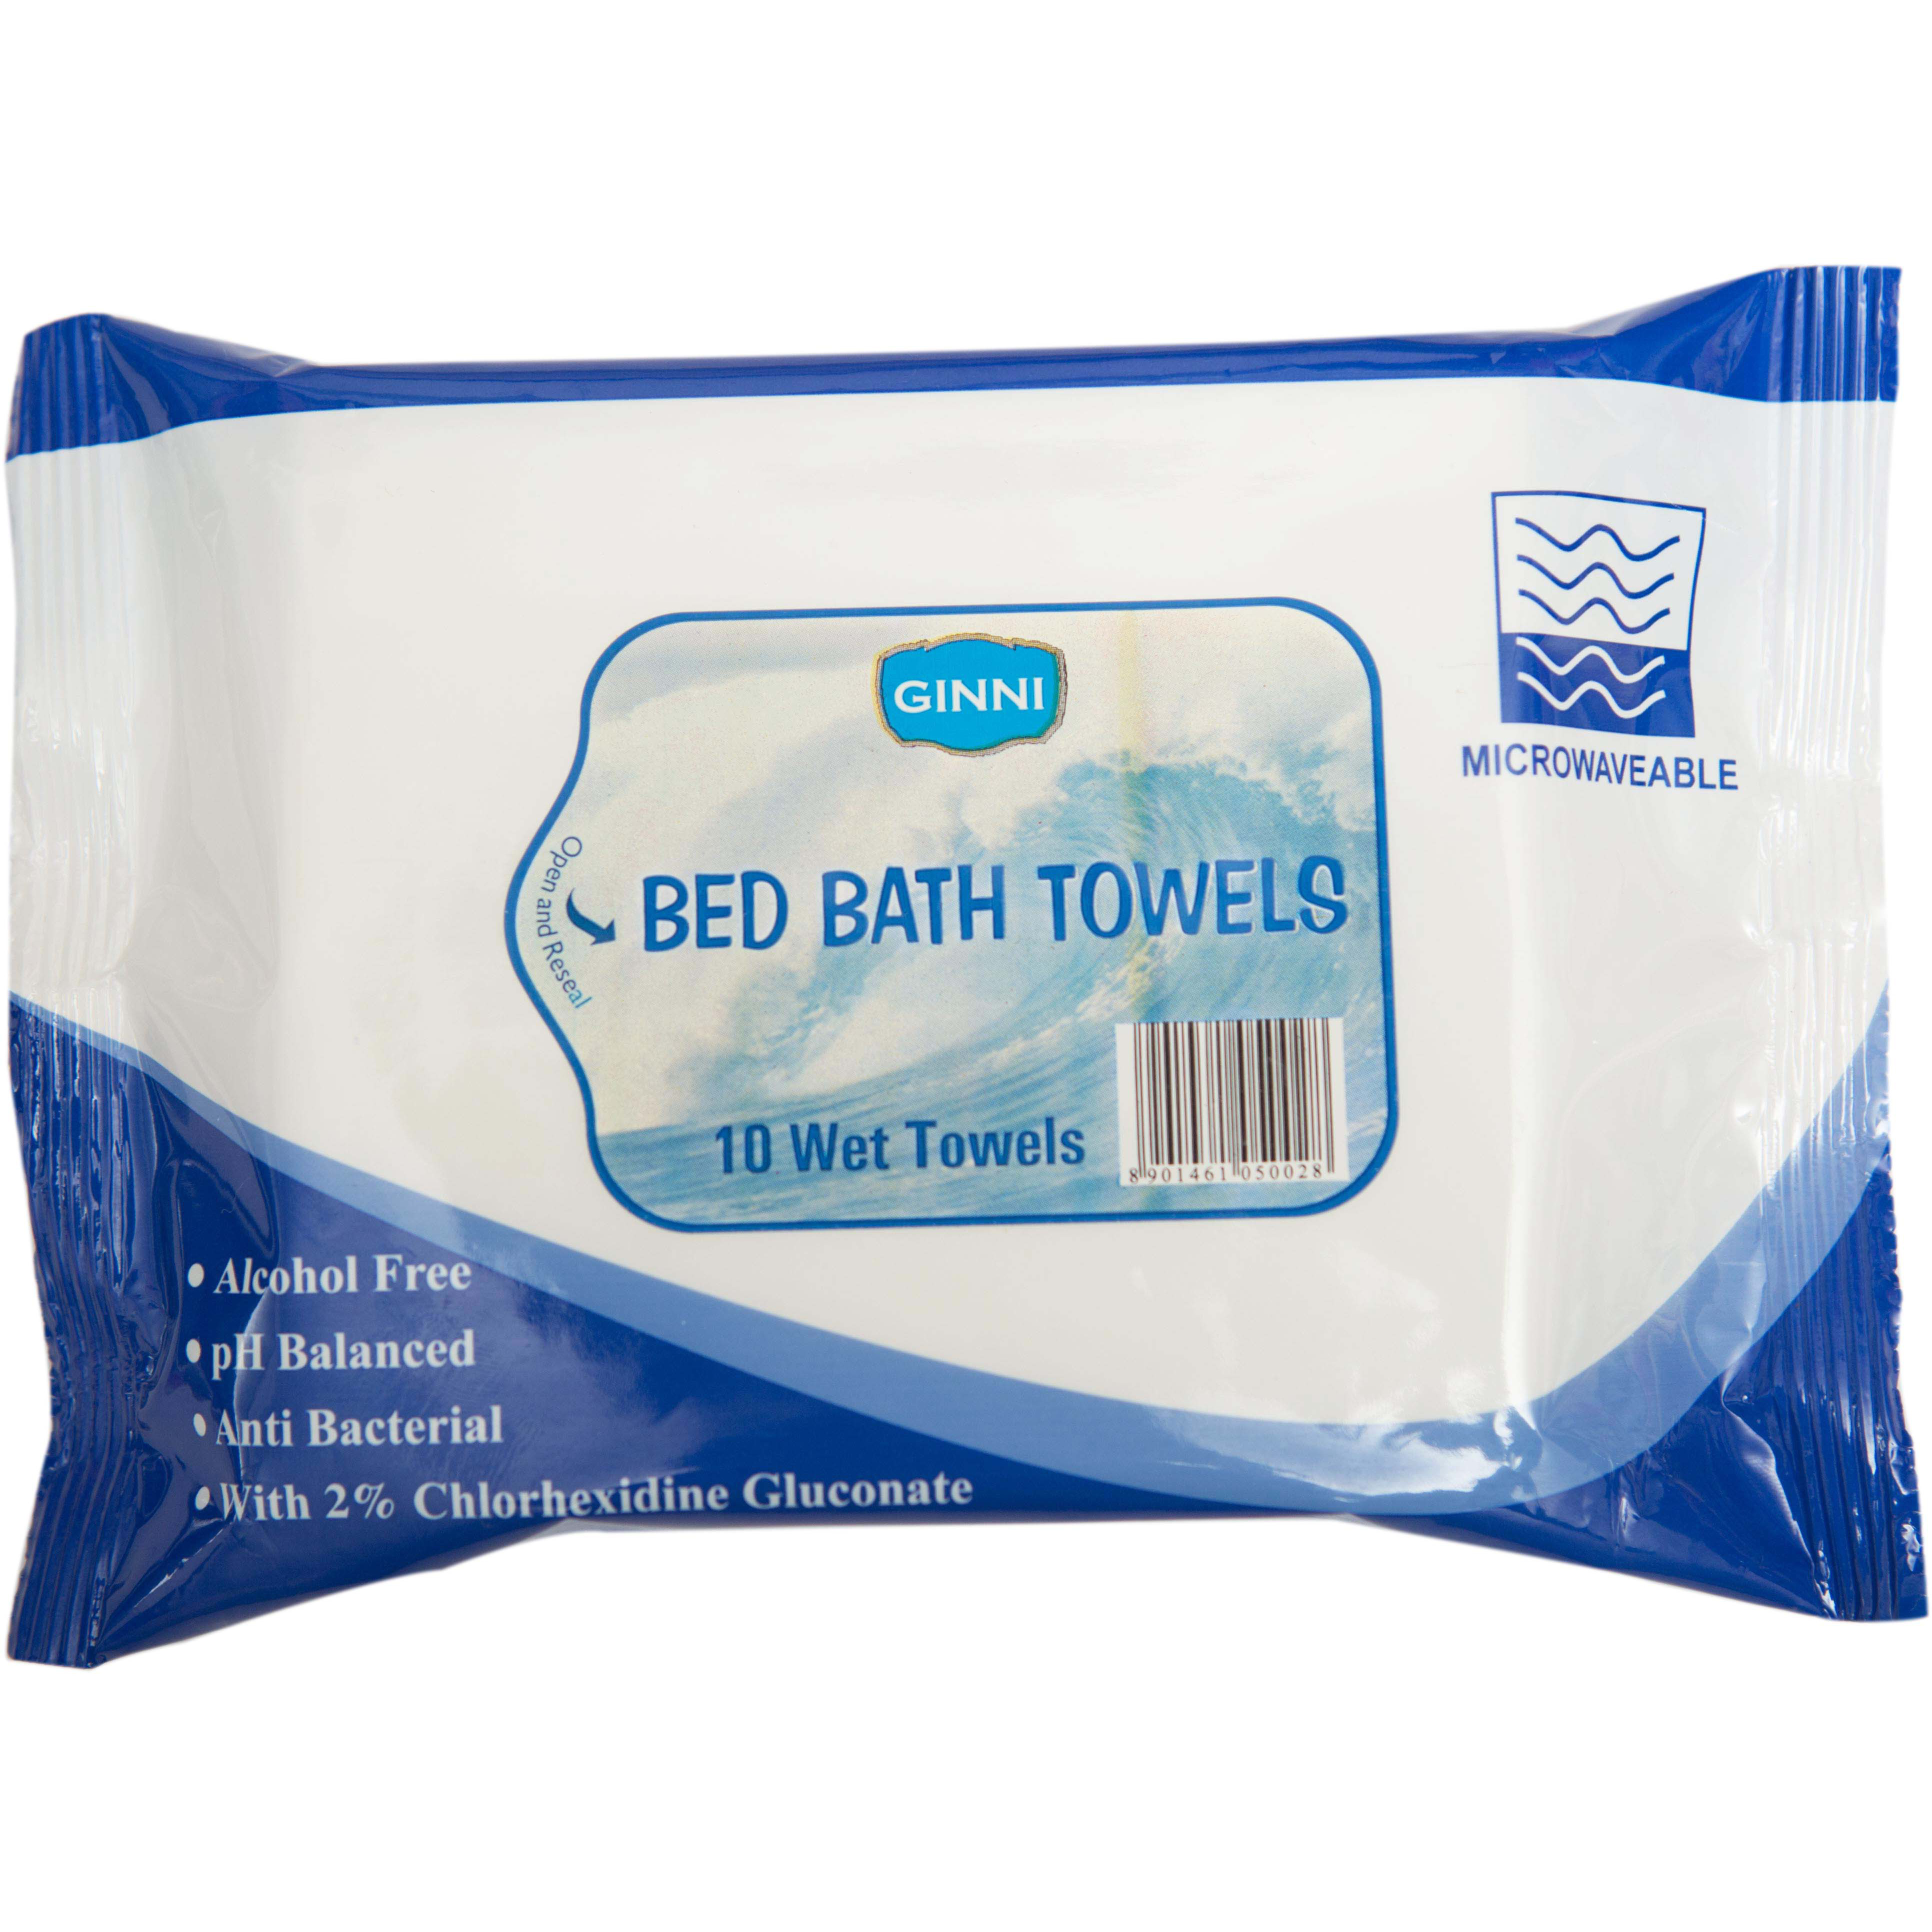 Ginni Bed Bath Towel-for sponge bath (set of 8 packets) (10 wet wipes per packet)